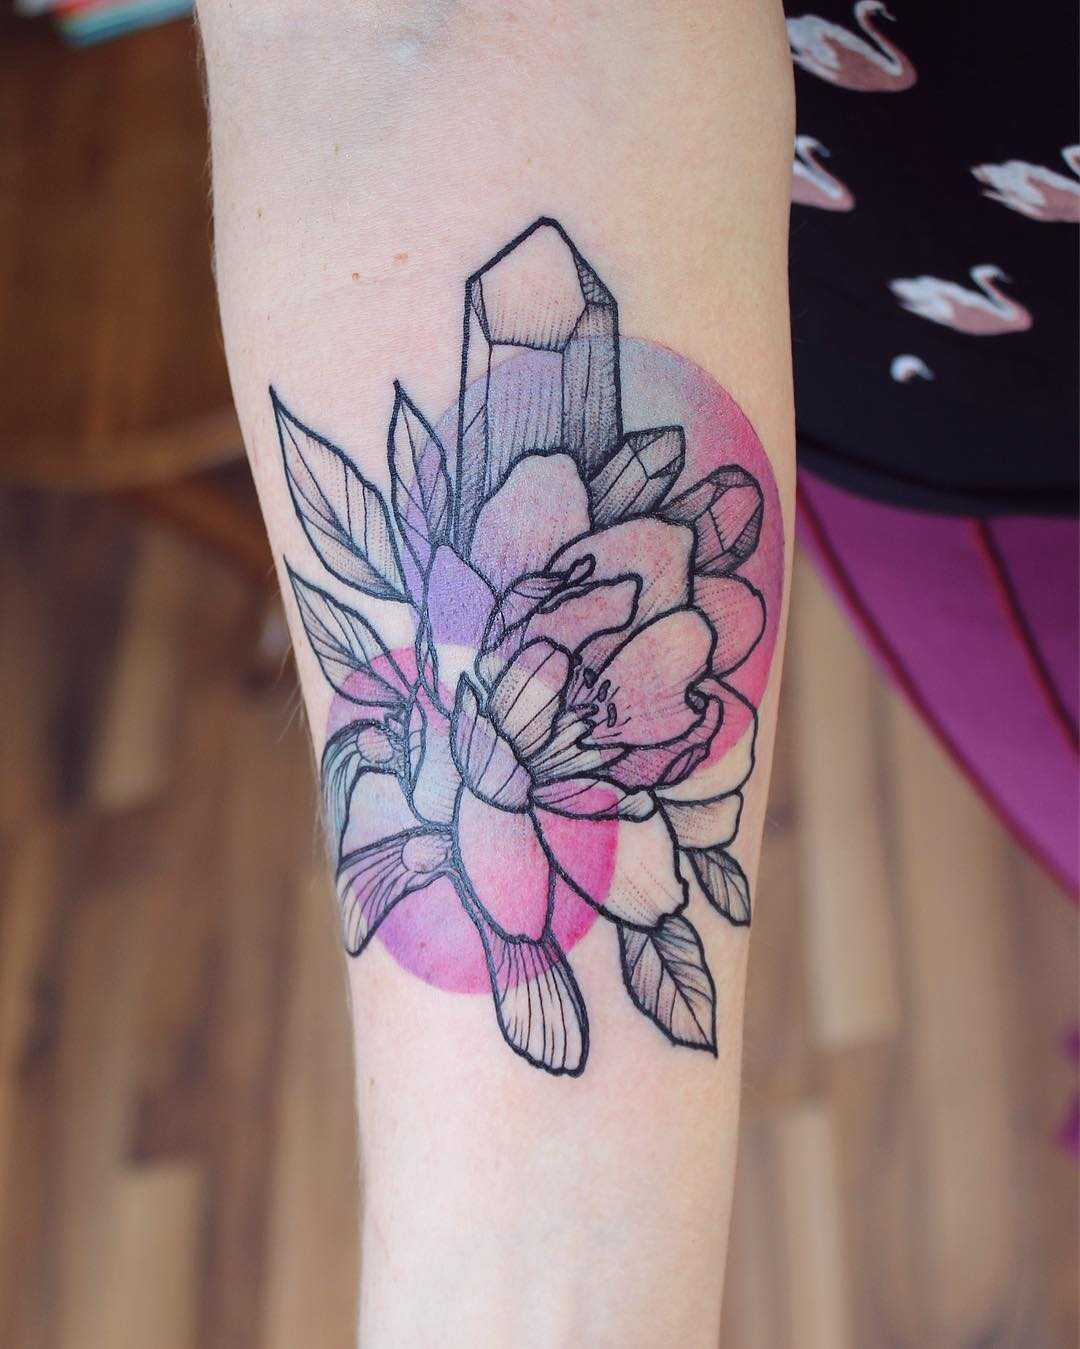 Crystal and flowers by Emily Kaul